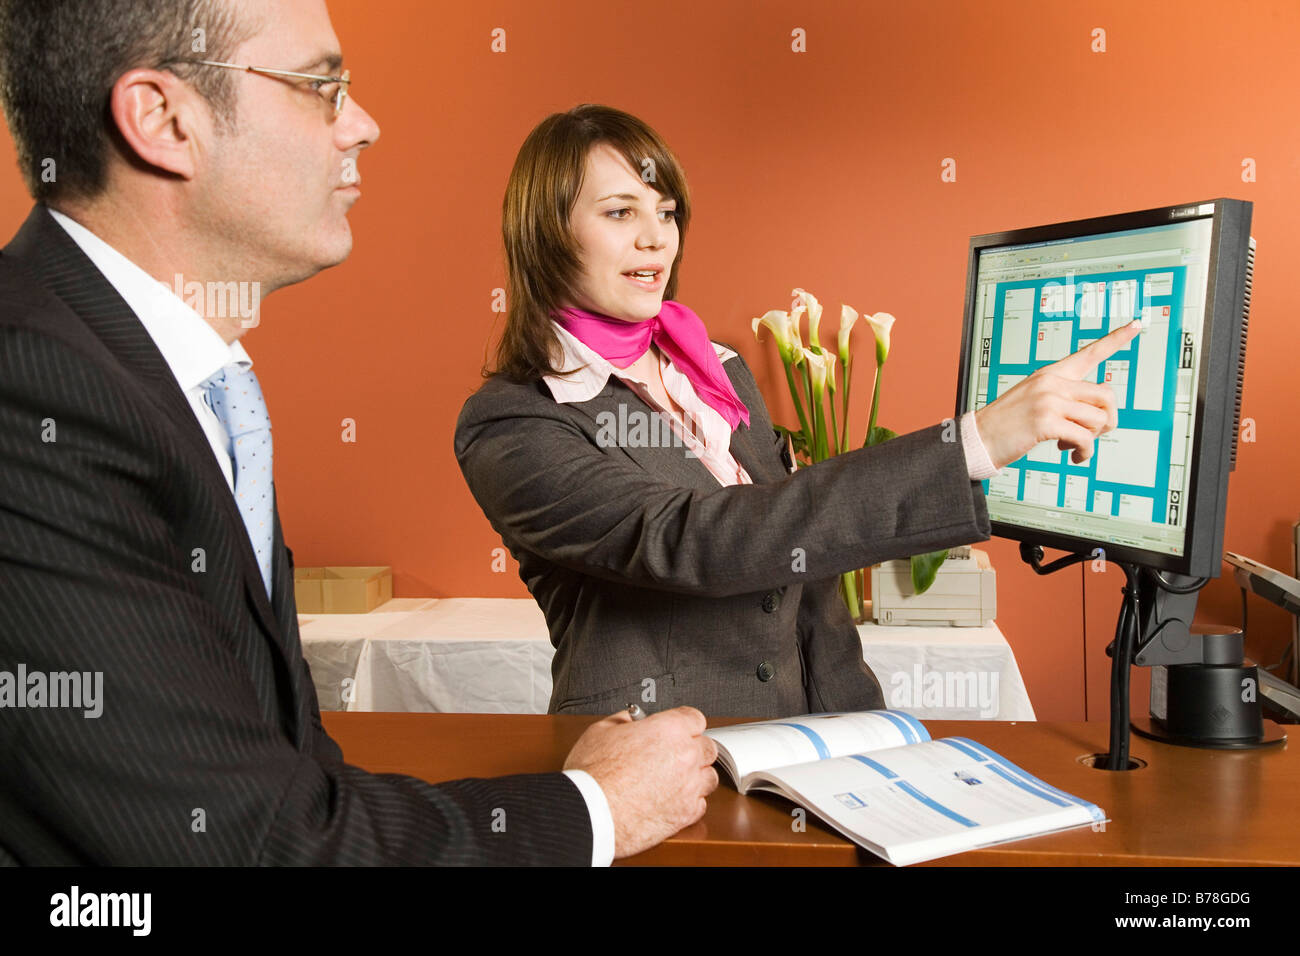 Hostess of Messe Schweiz explaining to a visitor on the screen the way to an exhibition booth in the Basel Exhibition - Stock Image